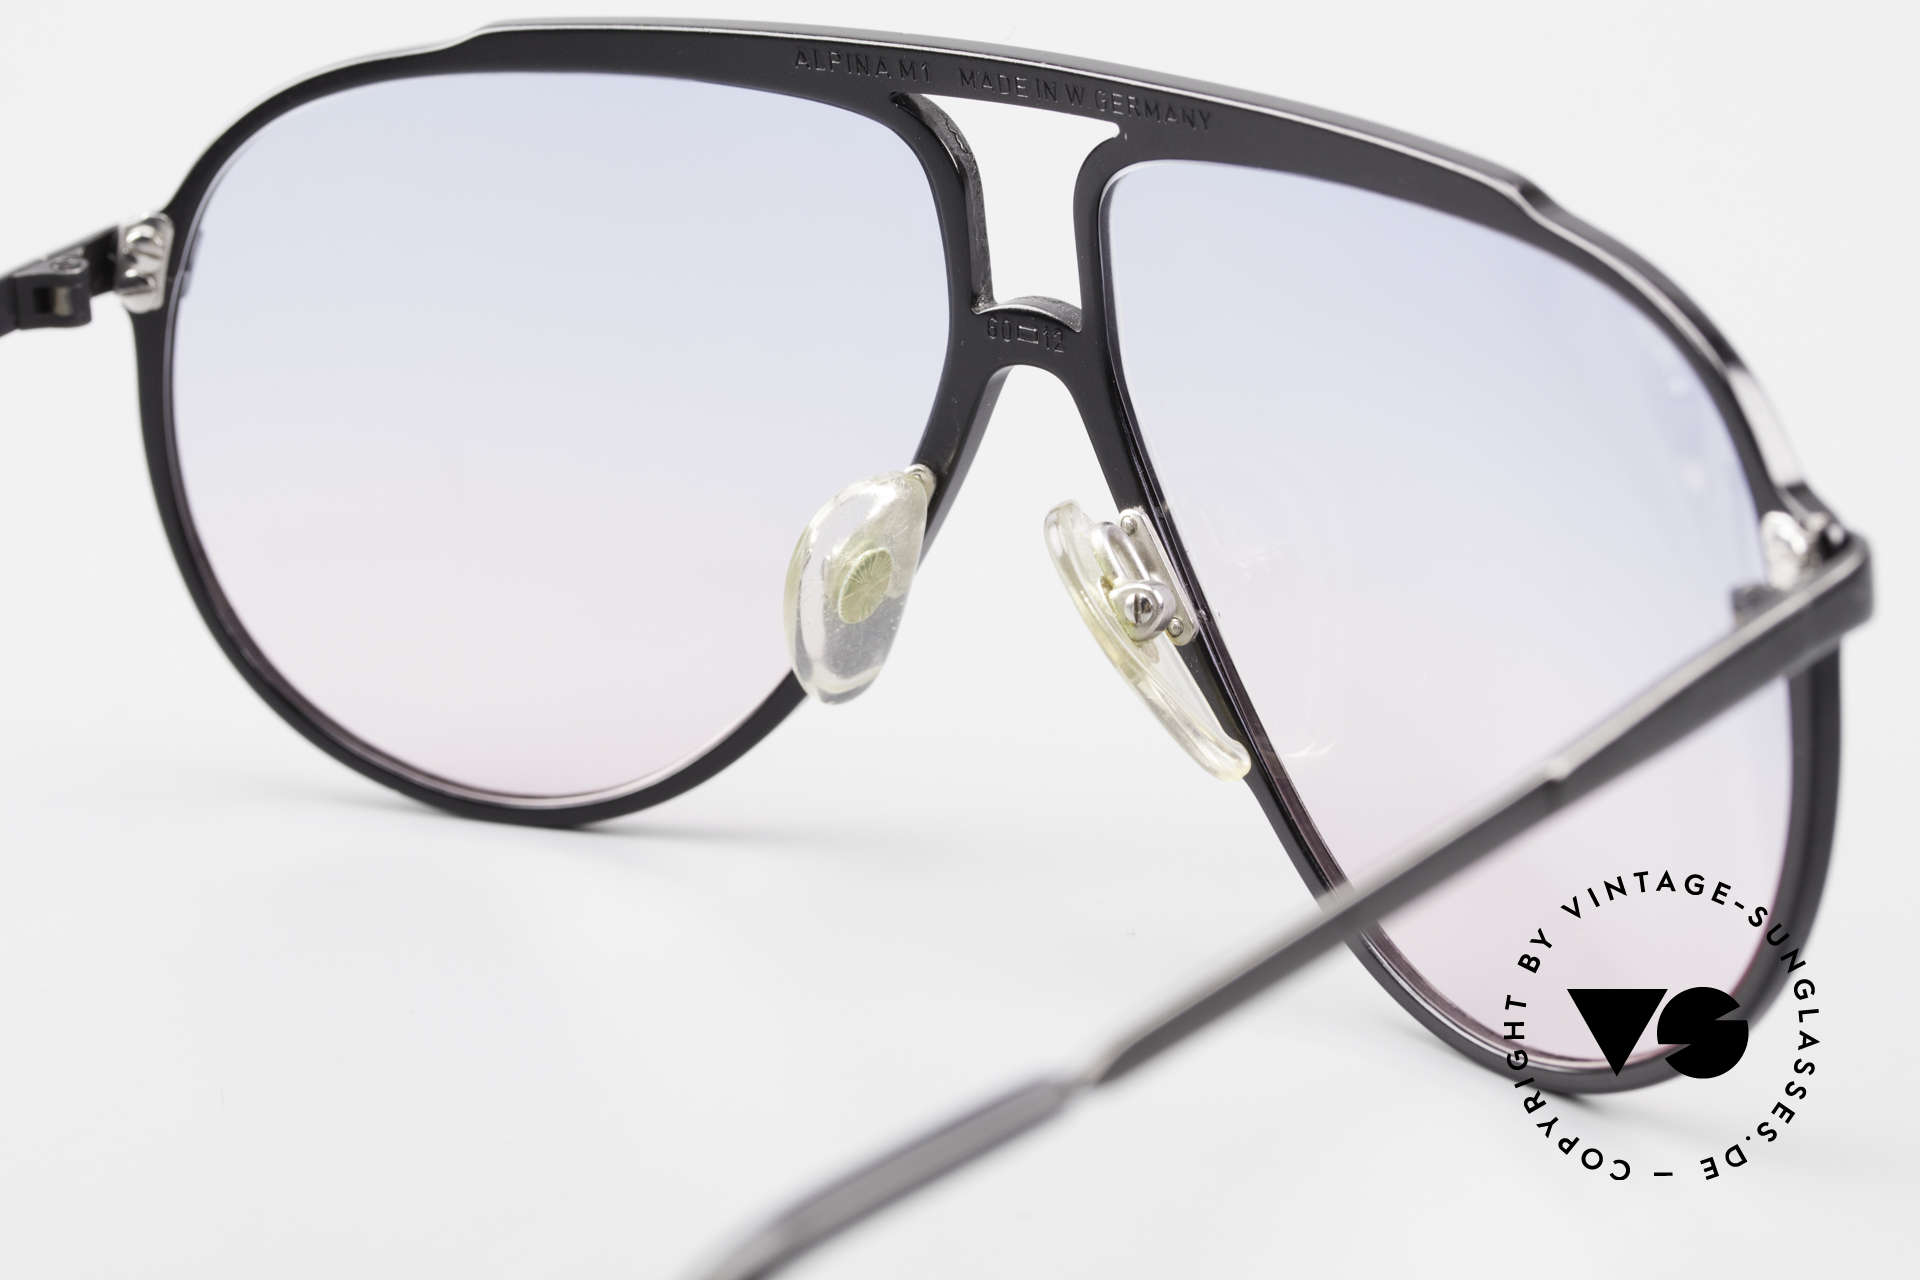 Alpina M1 Limited Titanium Edition 80's, NO RETRO sunglasses; the old ORIGINAL from 1987!, Made for Men and Women